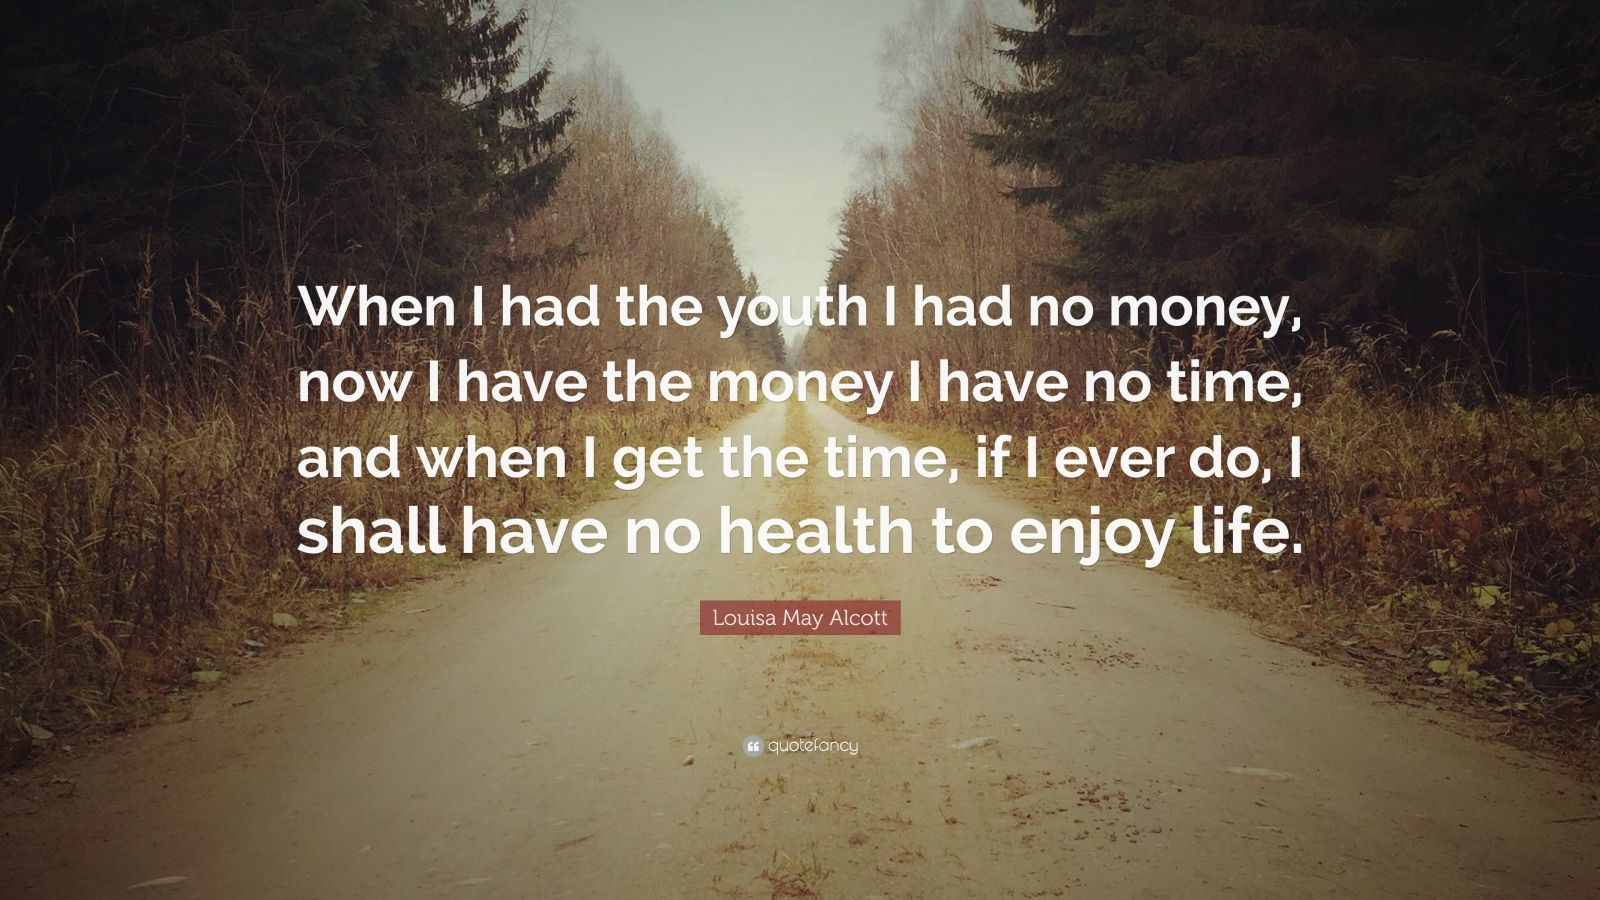 "Louisa May Alcott Quote: ""When I had the youth I had no money, now I have the money I have no time, and when I get the time, if I ever do, I shall have no health to enjoy life."""